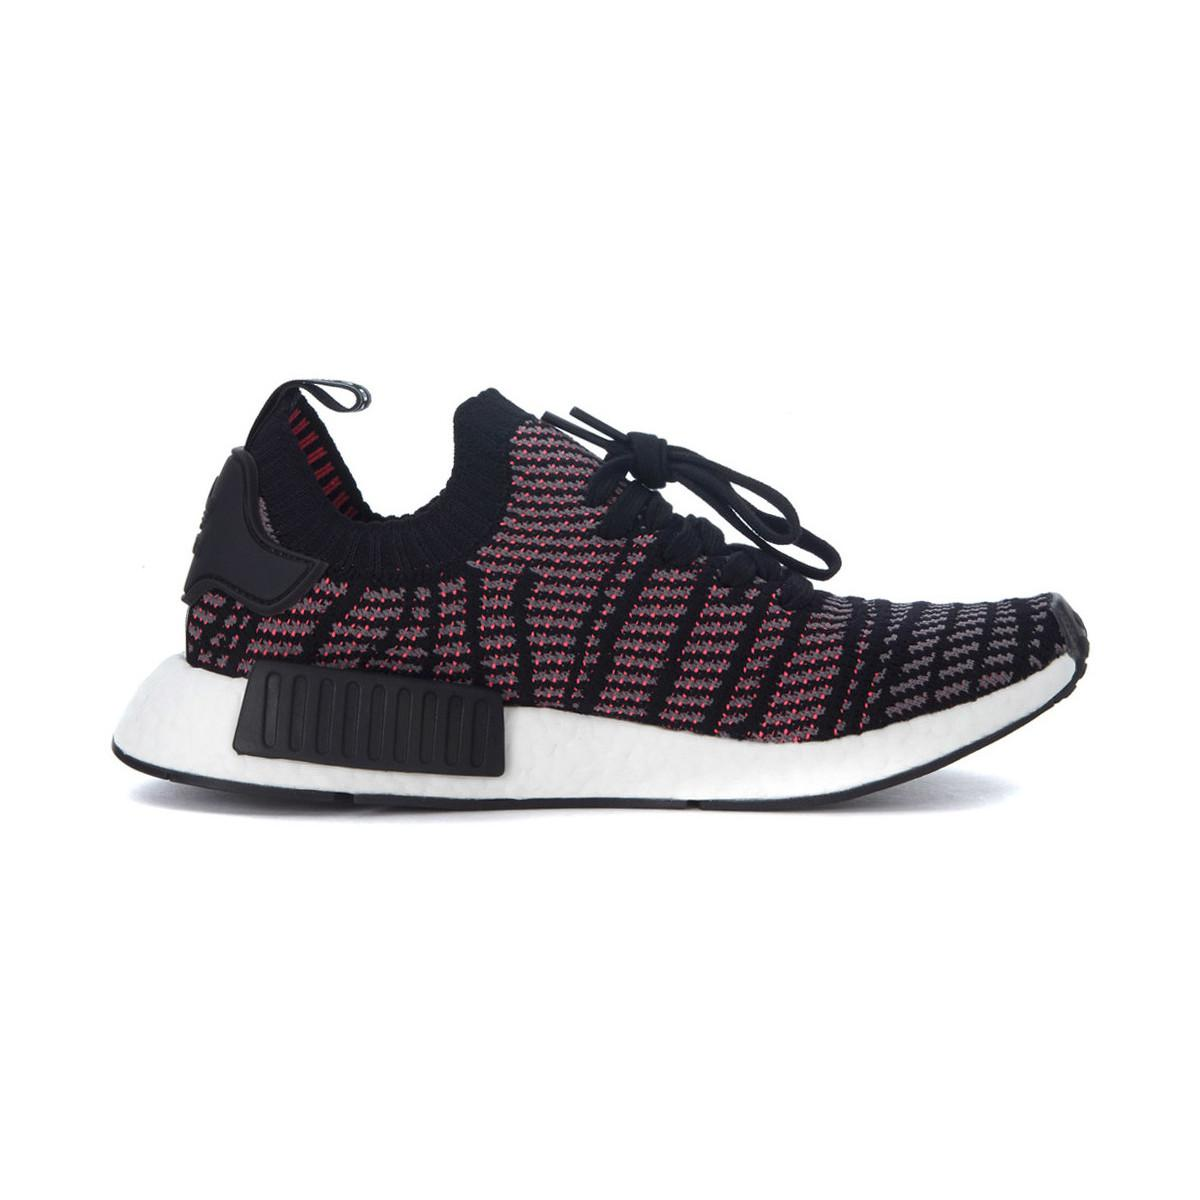 save off d9afa 1dd8c adidas Sneaker Nmd r1 Stlt Nera E Rossa Men s Shoes (trainers) In ...